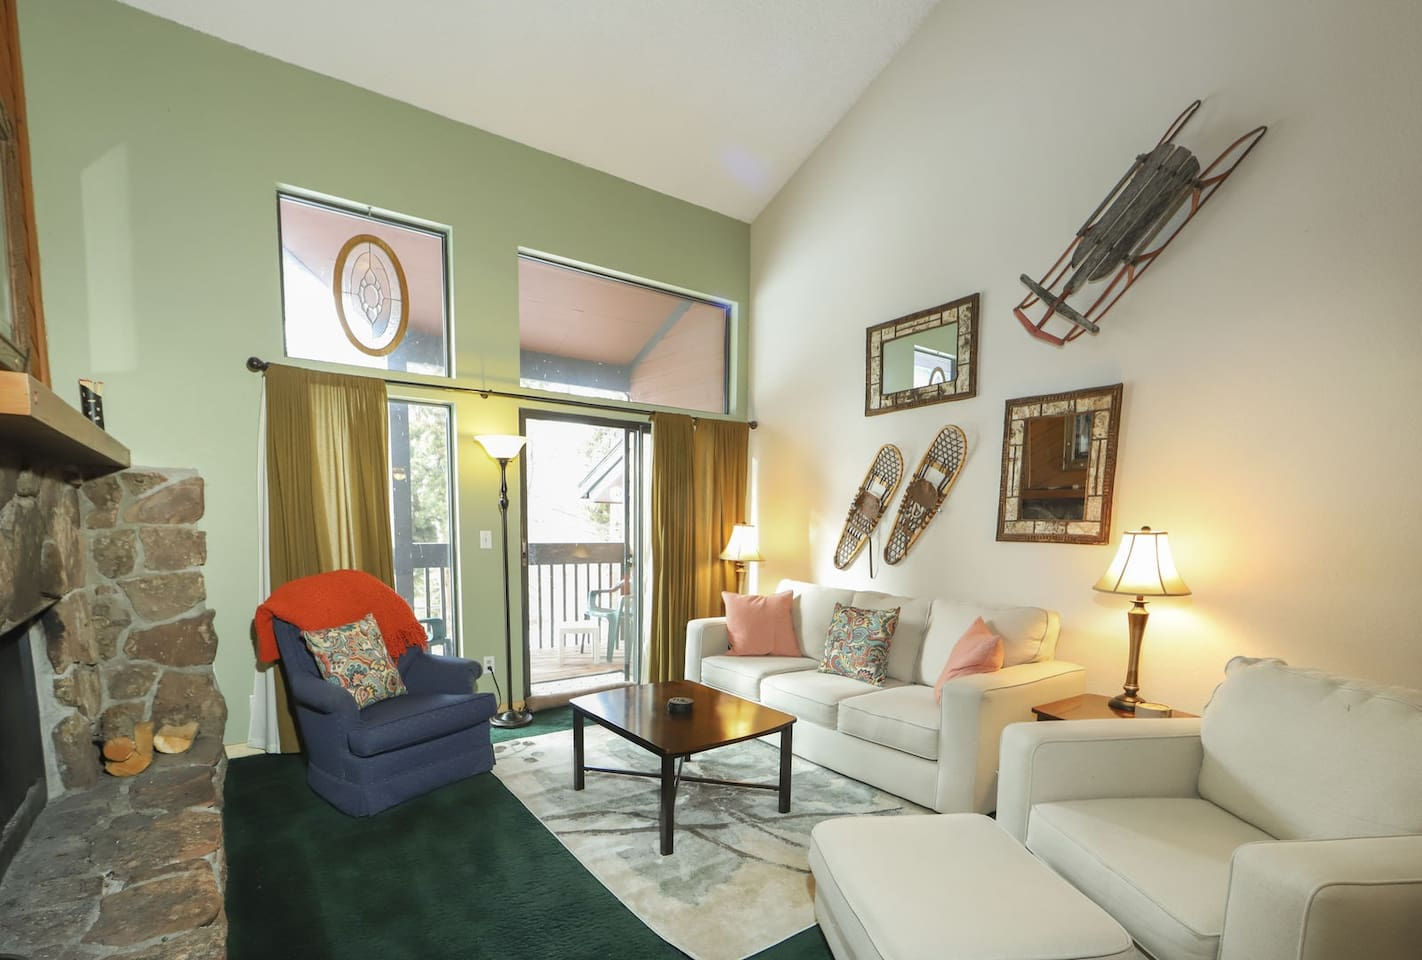 Winter Park area Family vacation rental. The living room with a confy couch, and chairs. The woodburning fireplace is also located in the living room.